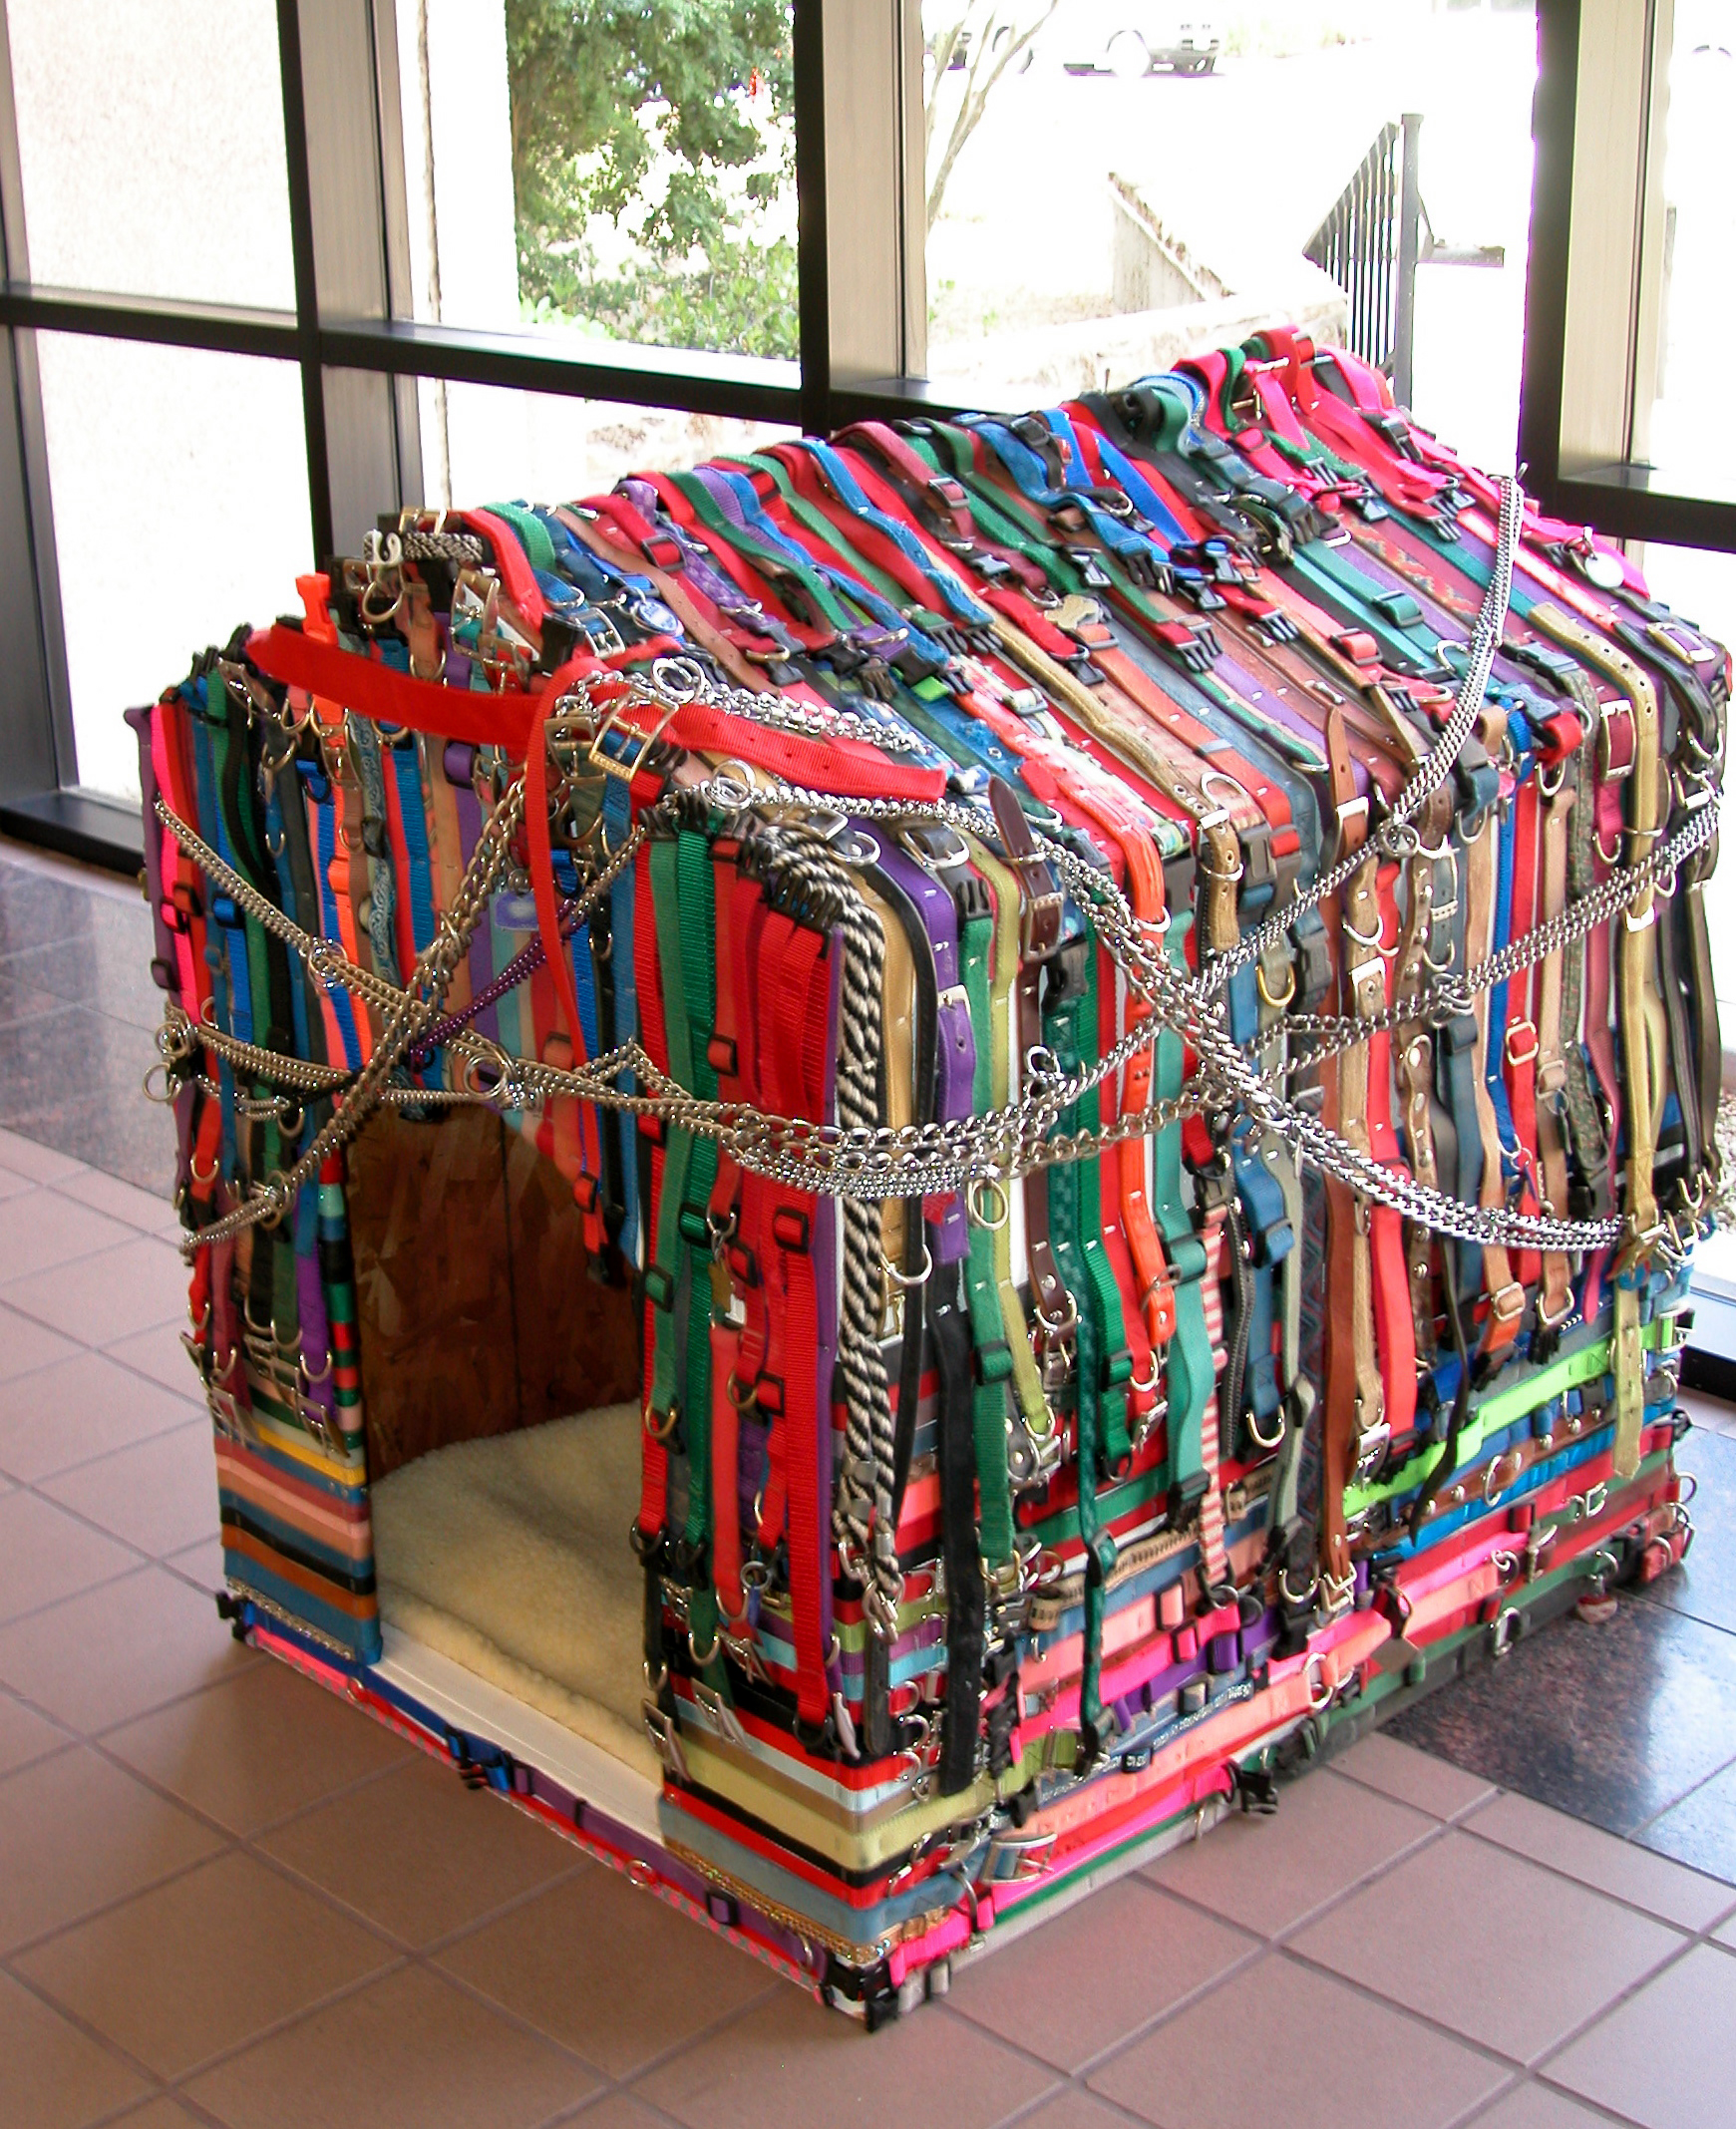 Carry Me Home, wood with 575 dog collars from shelters